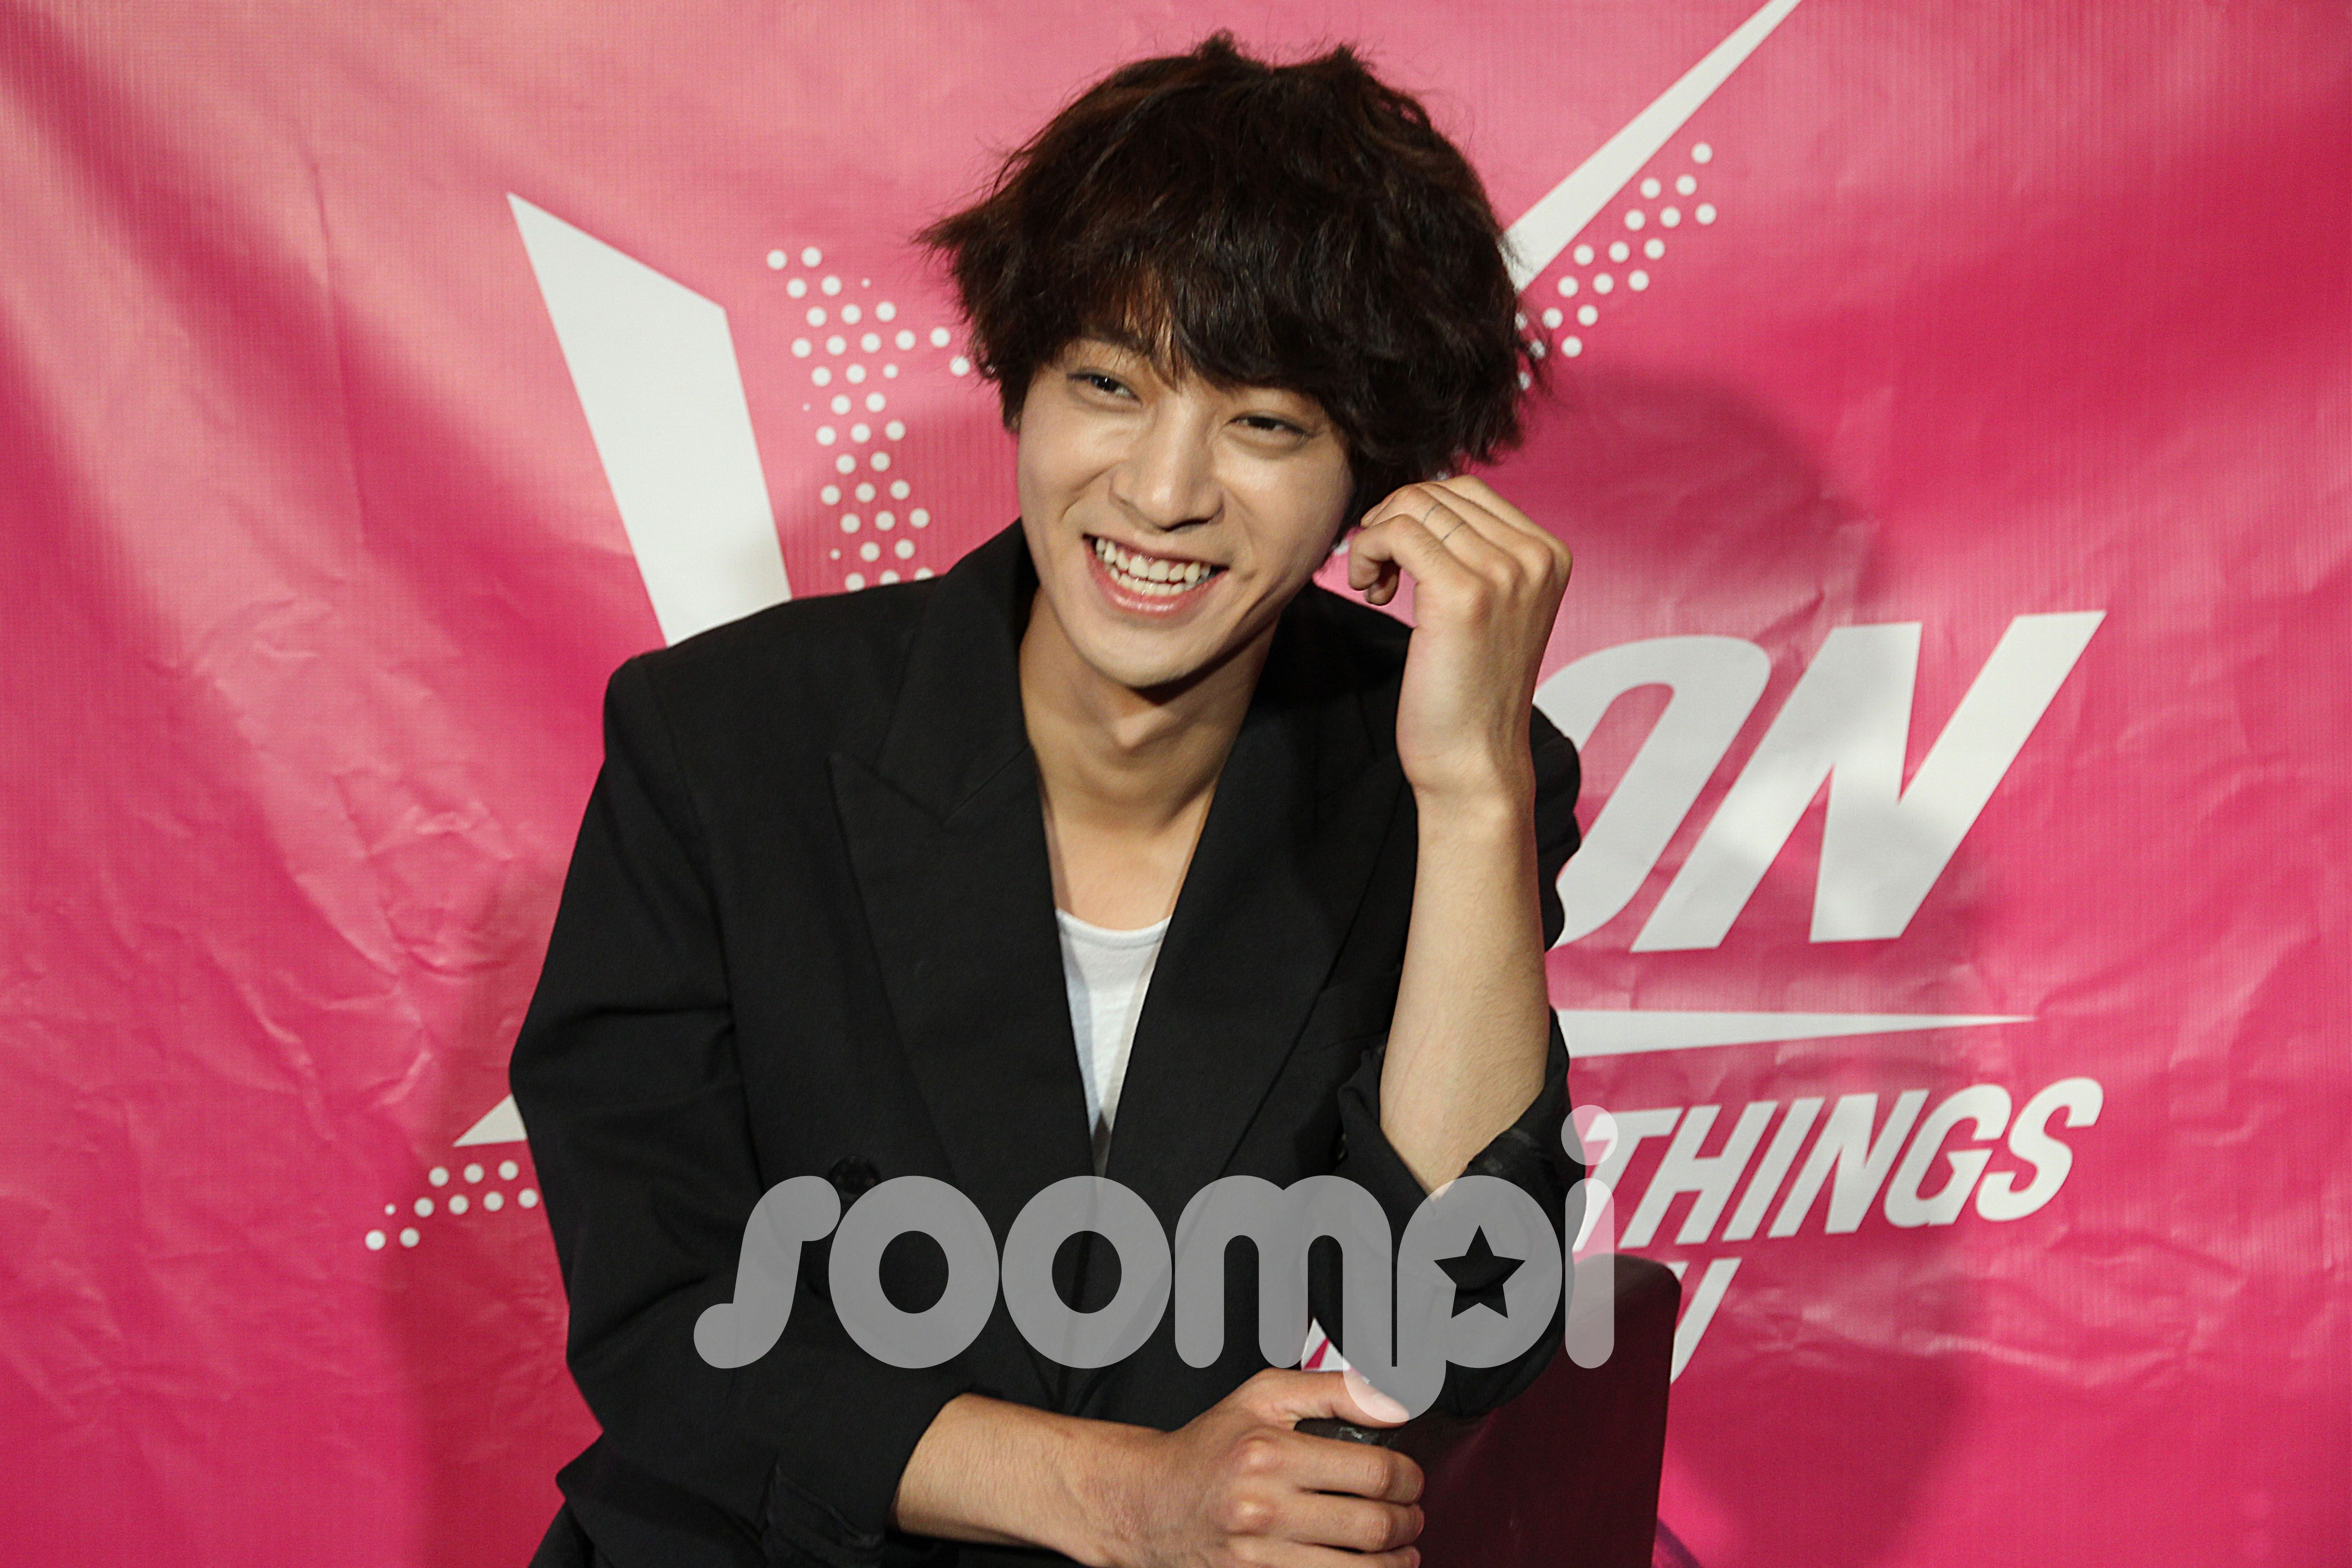 Interview @Soompi @KCon   Little Andrew   Jung joon young